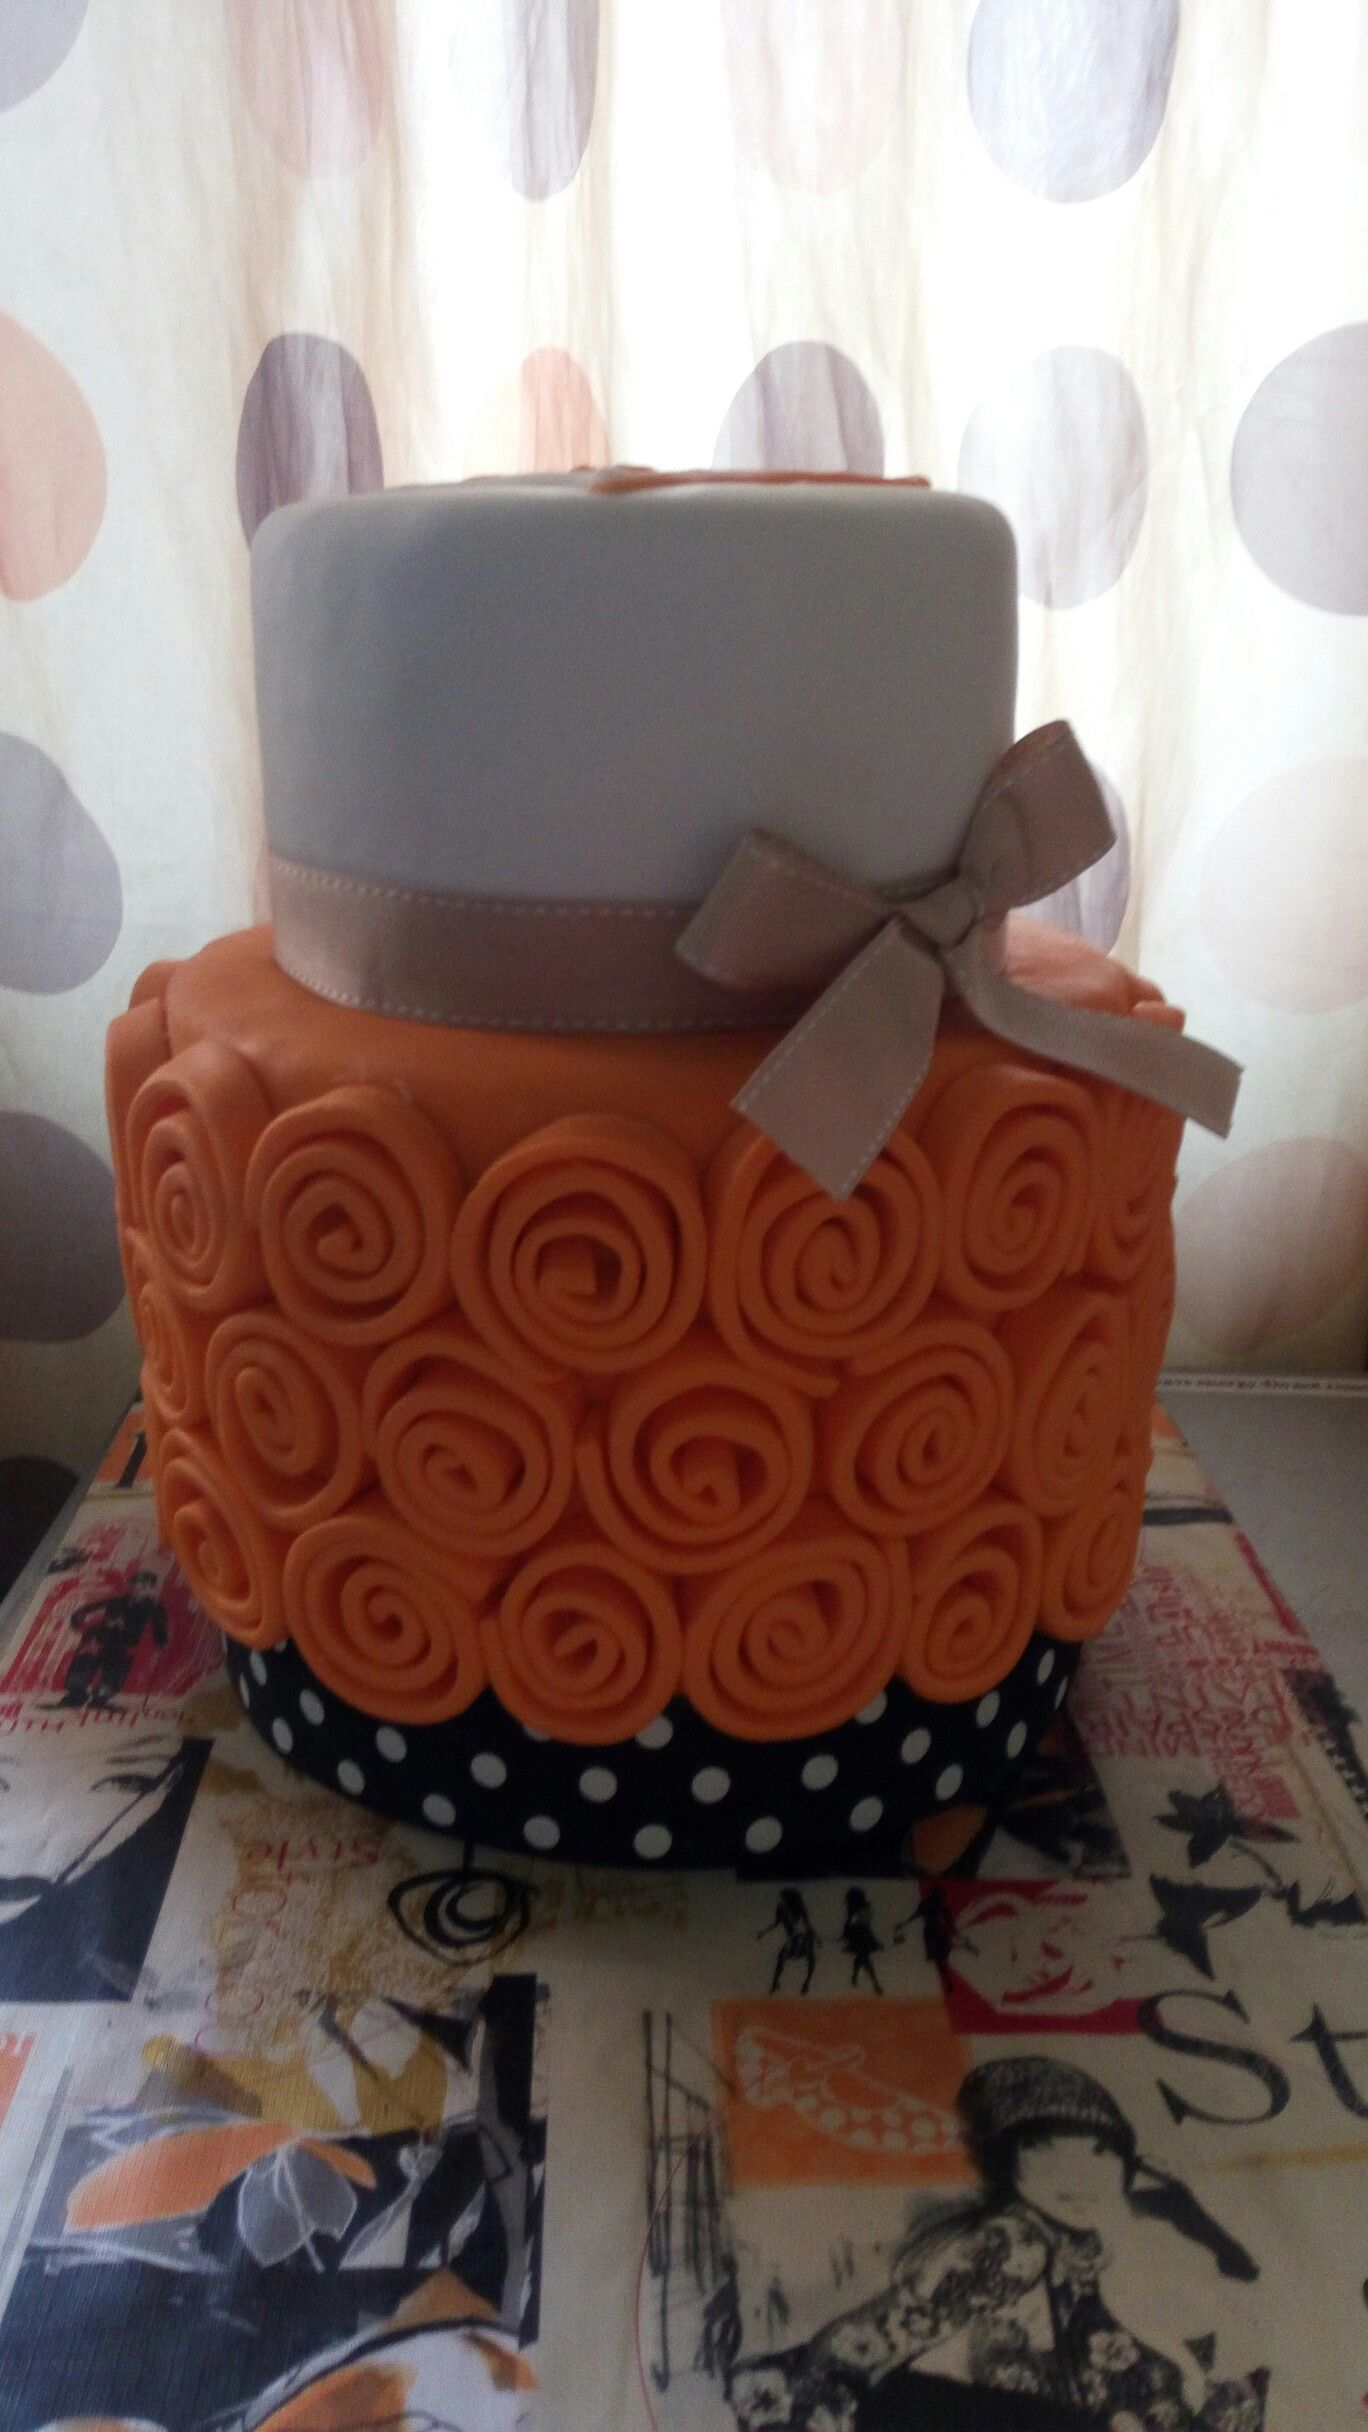 Cakes for women by cobcakes cakes for women desserts cake